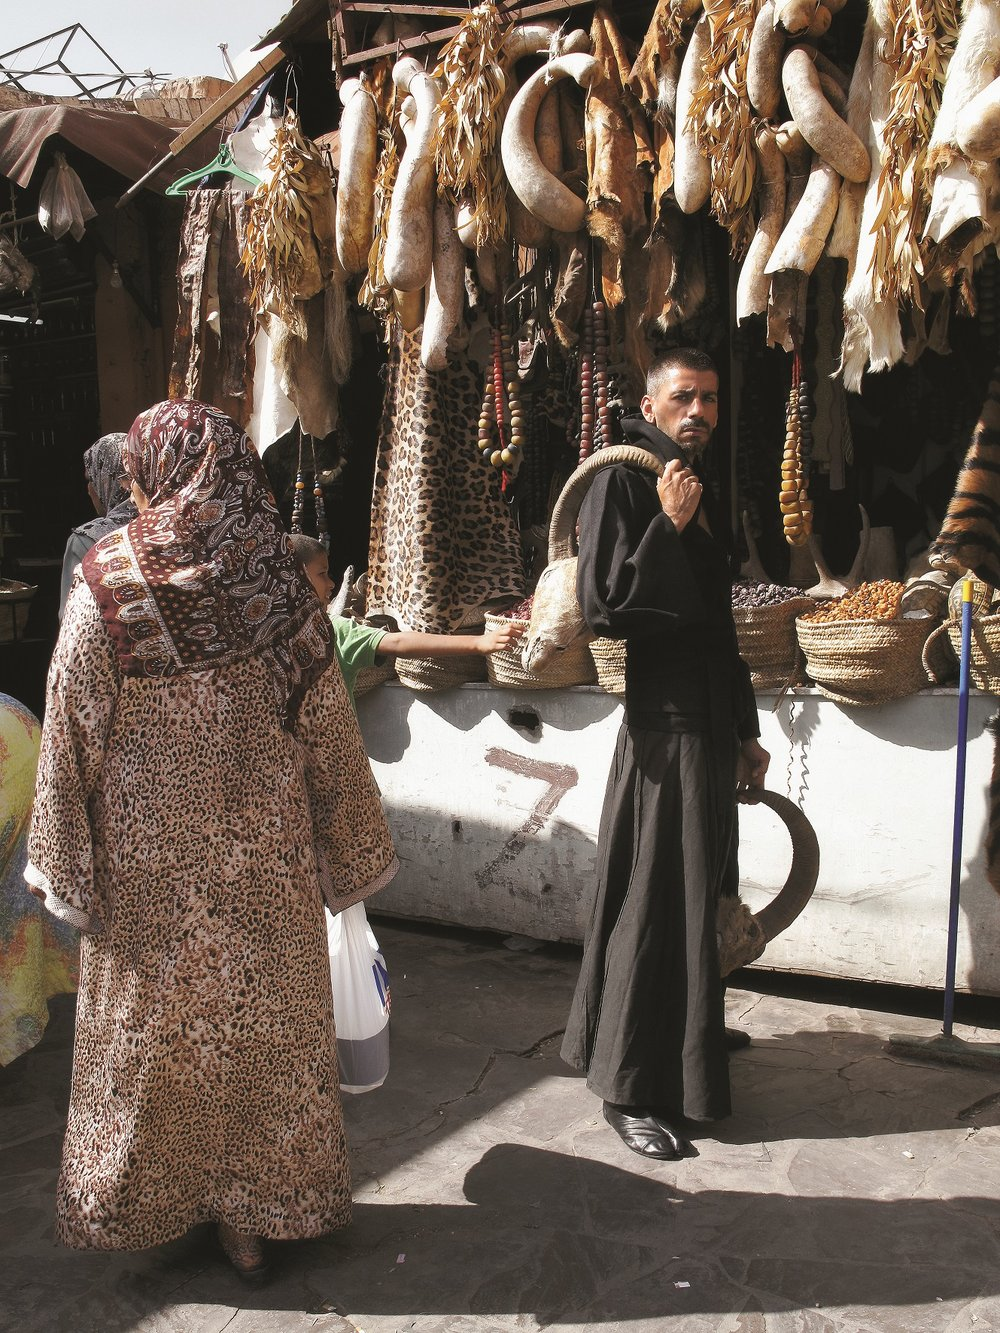 9 globetrotter issue 2 fashion spread morocco abcb culture and bullshit.jpg